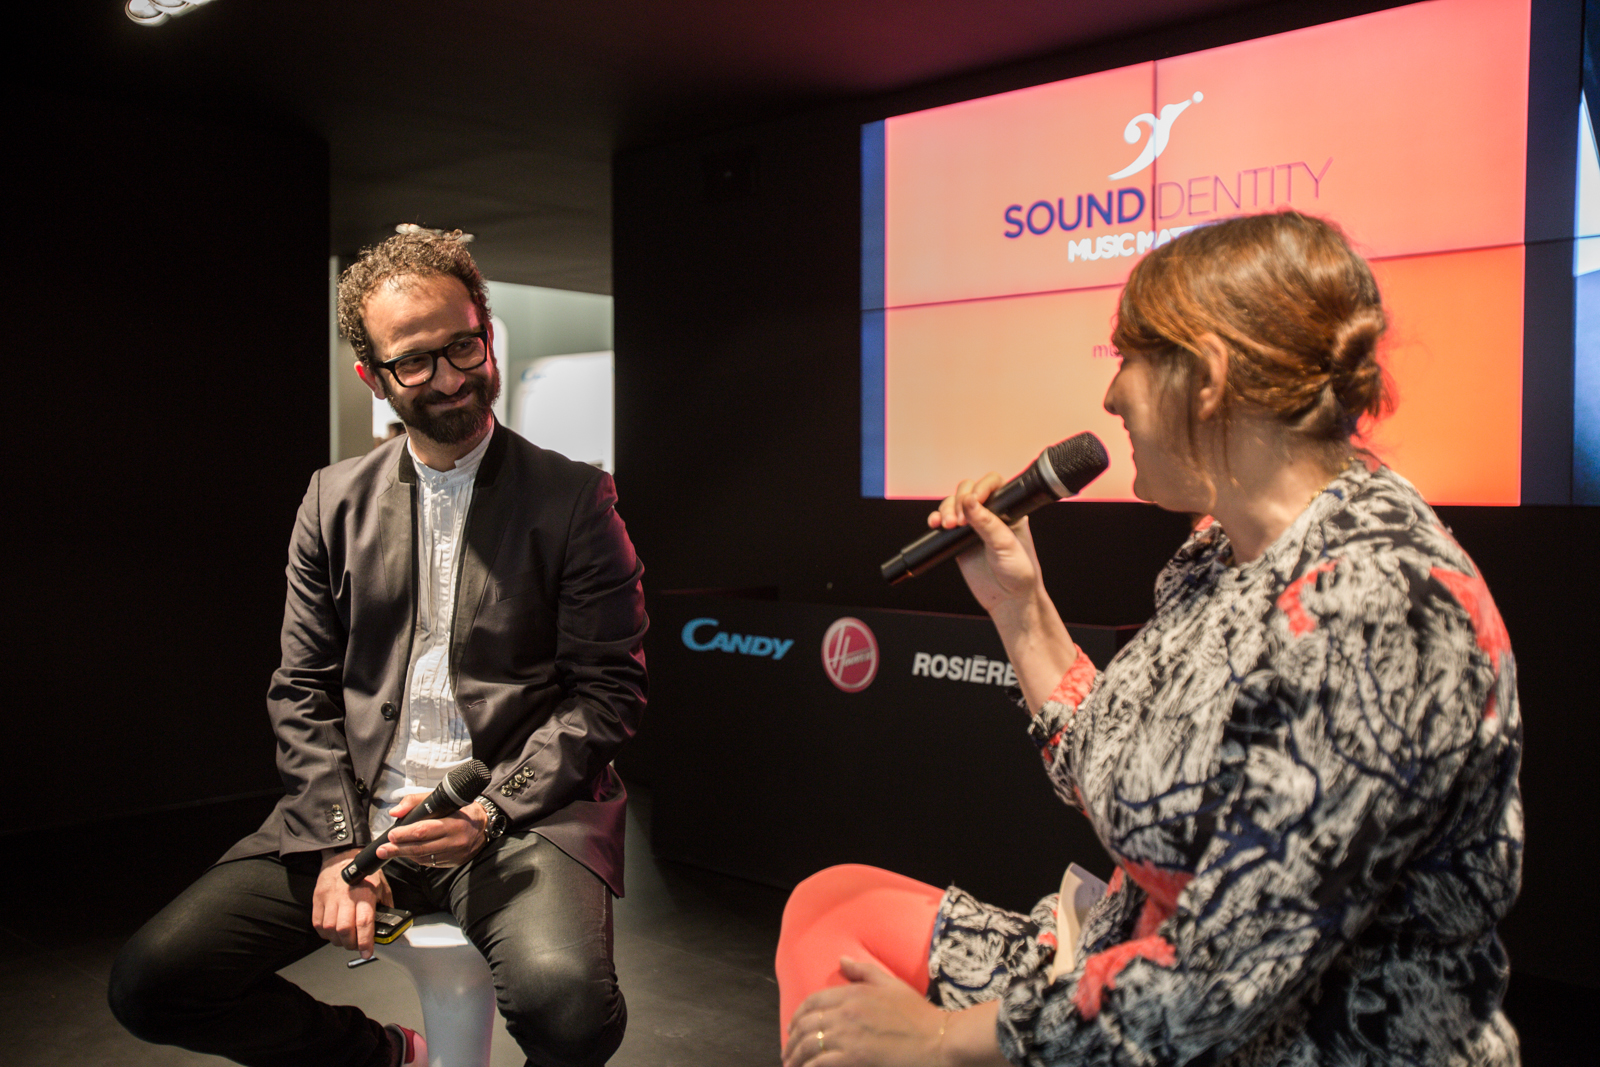 """Stefano Fontana chats with Candy about the """"flavour of sound"""""""